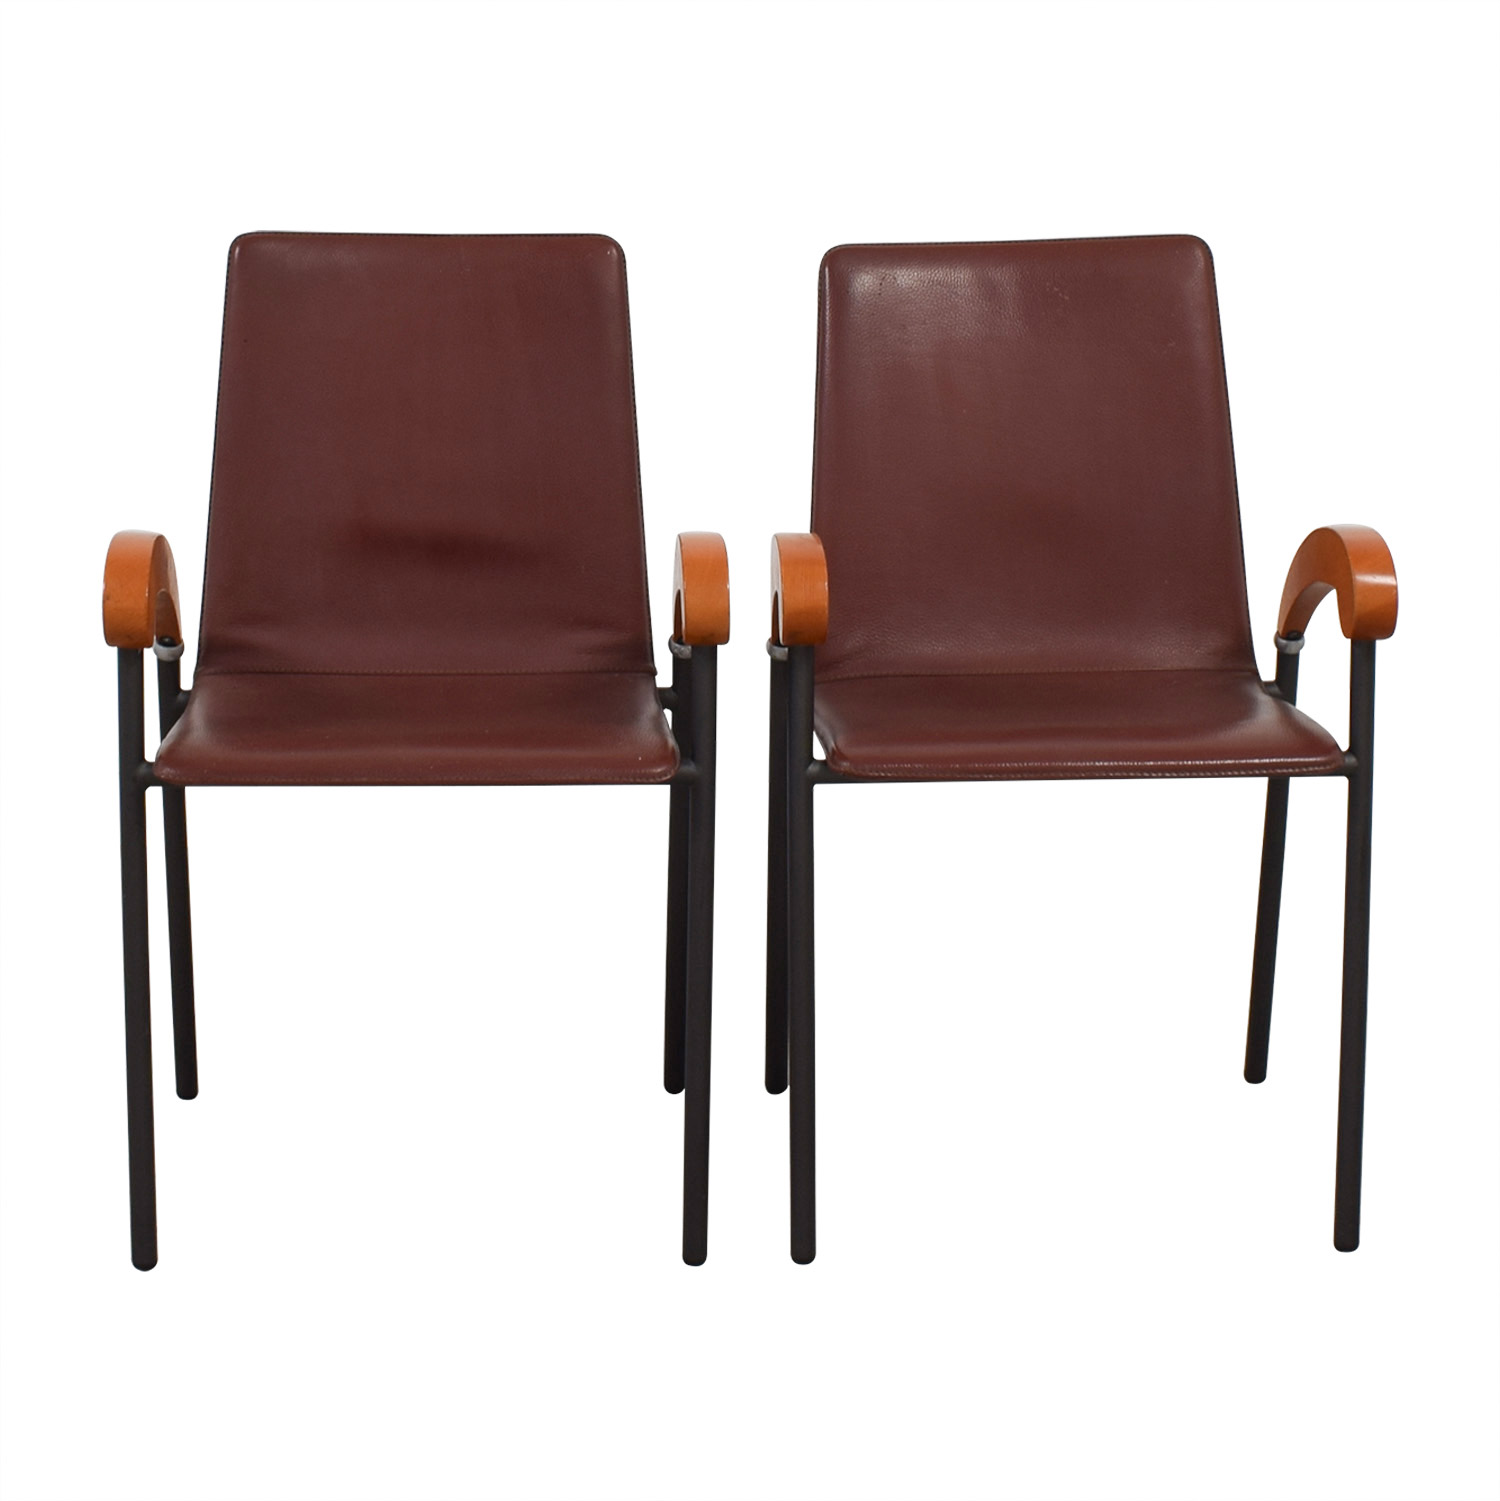 Italian Brown Leather and Cherry Wood Dining Chairs used